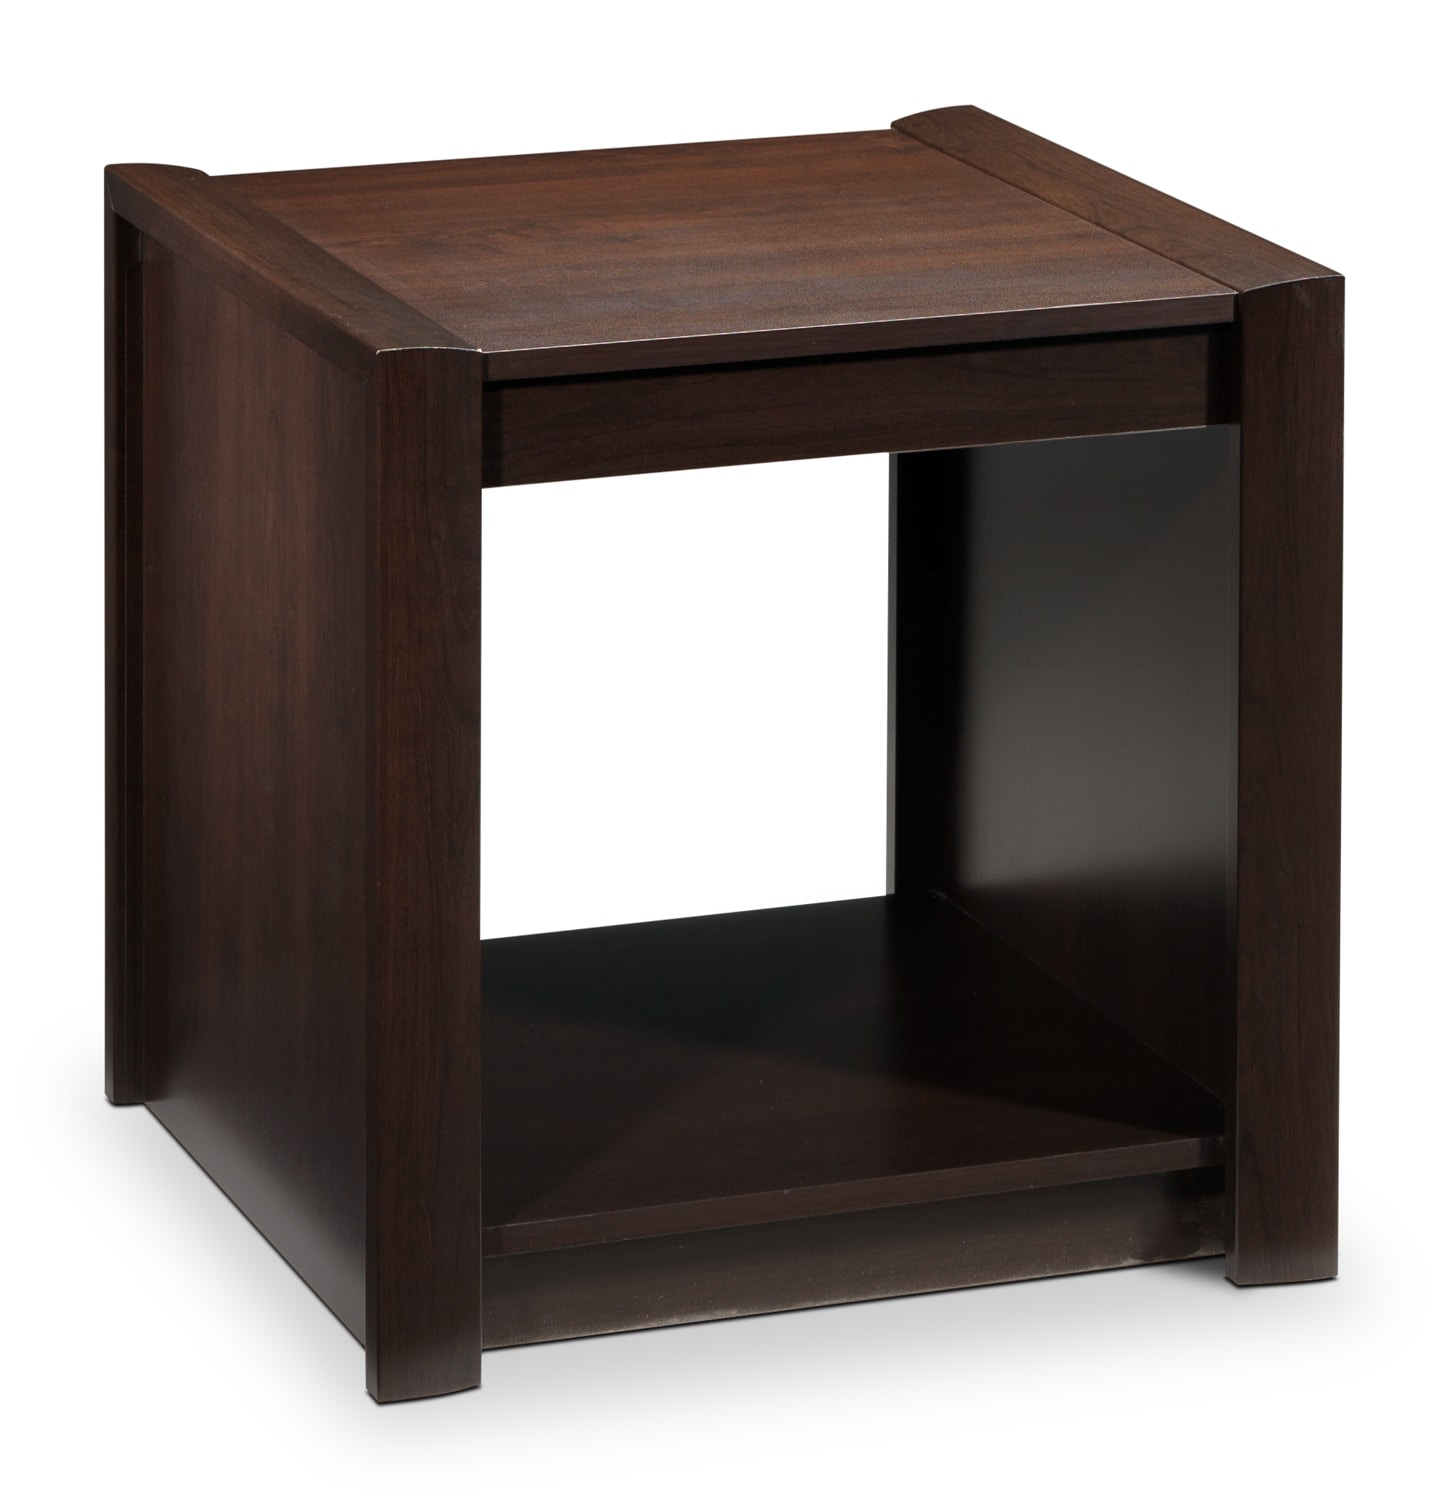 Toffee End Table - Maple Java